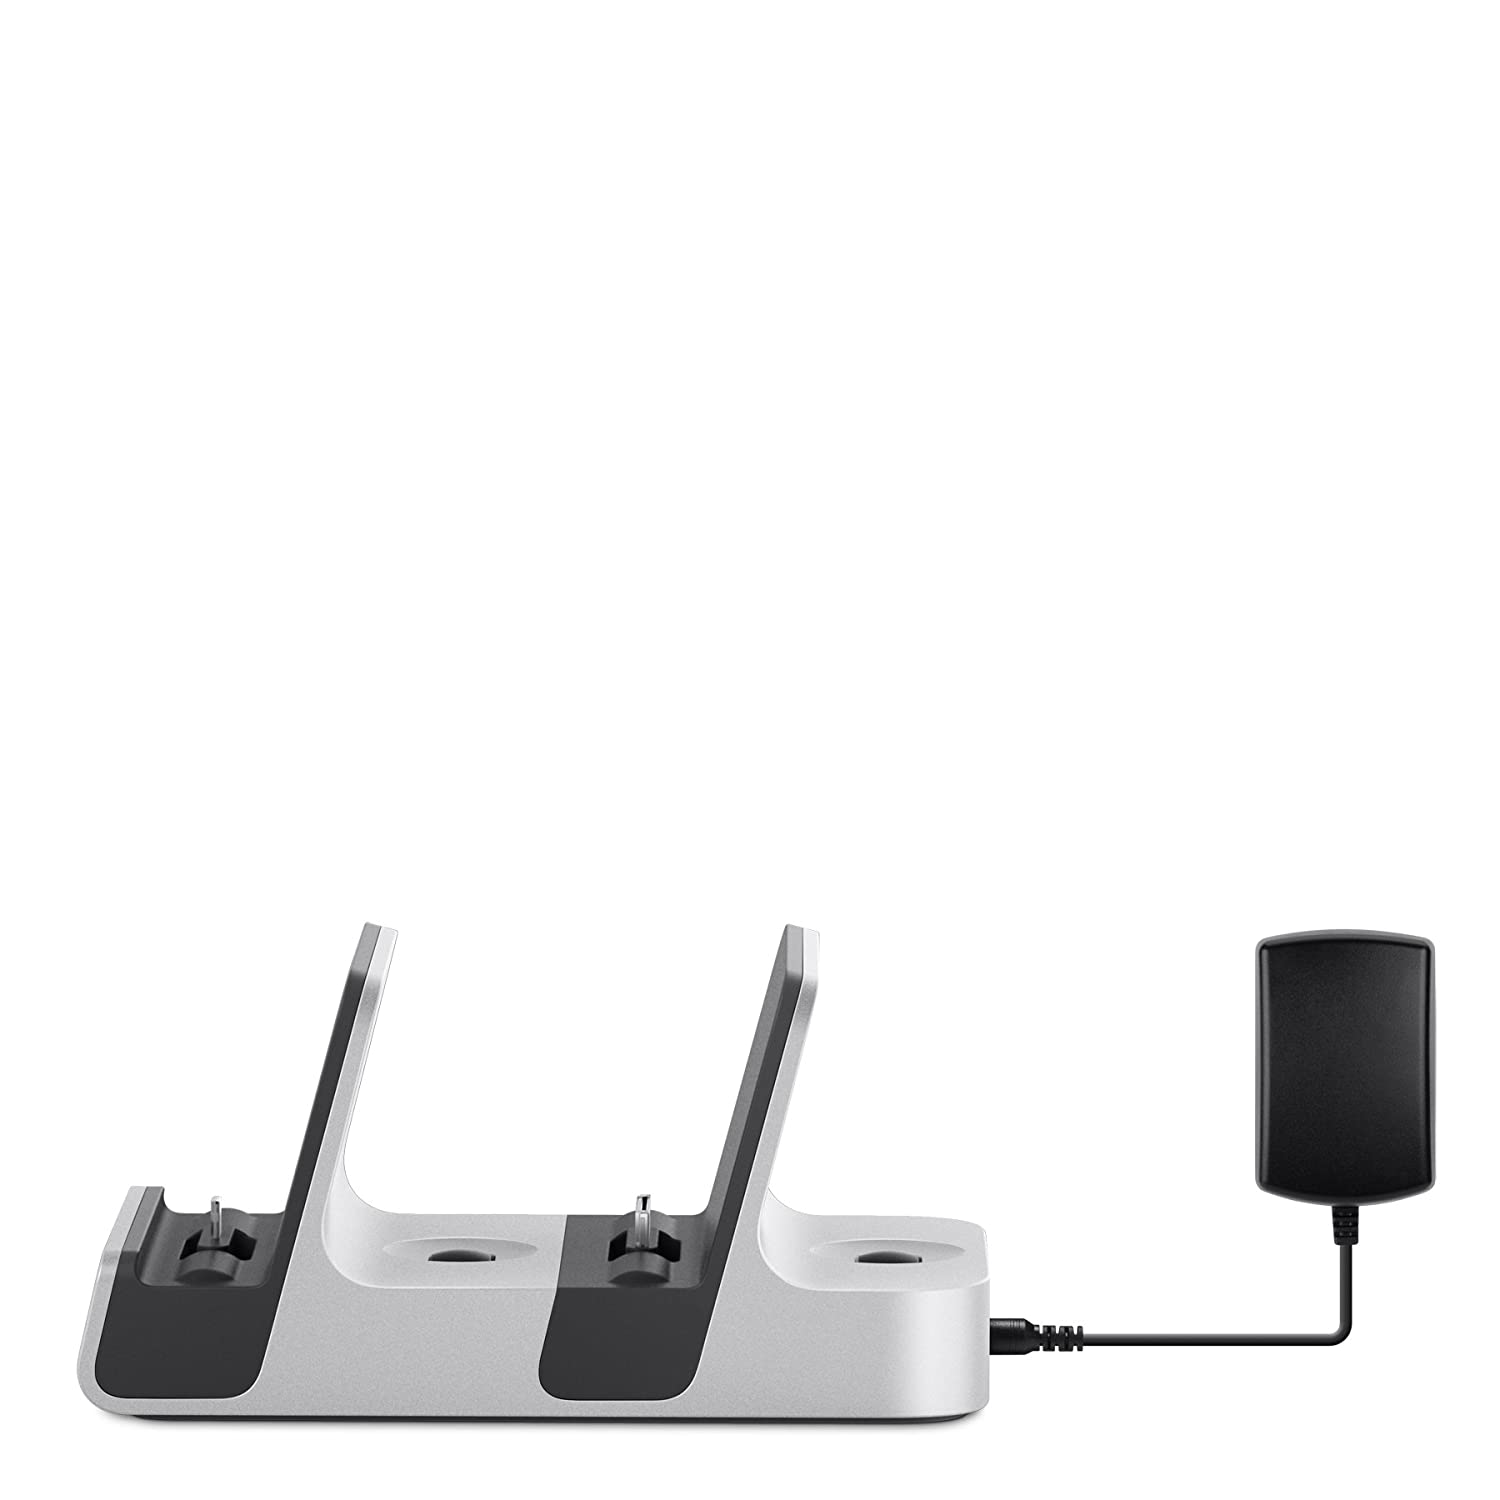 Attractive Amazon.com: Belkin PowerHouse Lightning And 30 Pin Charging Dock For IPhone  4S And Earlier Models, IPad 1/2/3 Gen, IPhone 5 And Later Models, IPad 4th  Gen, ...